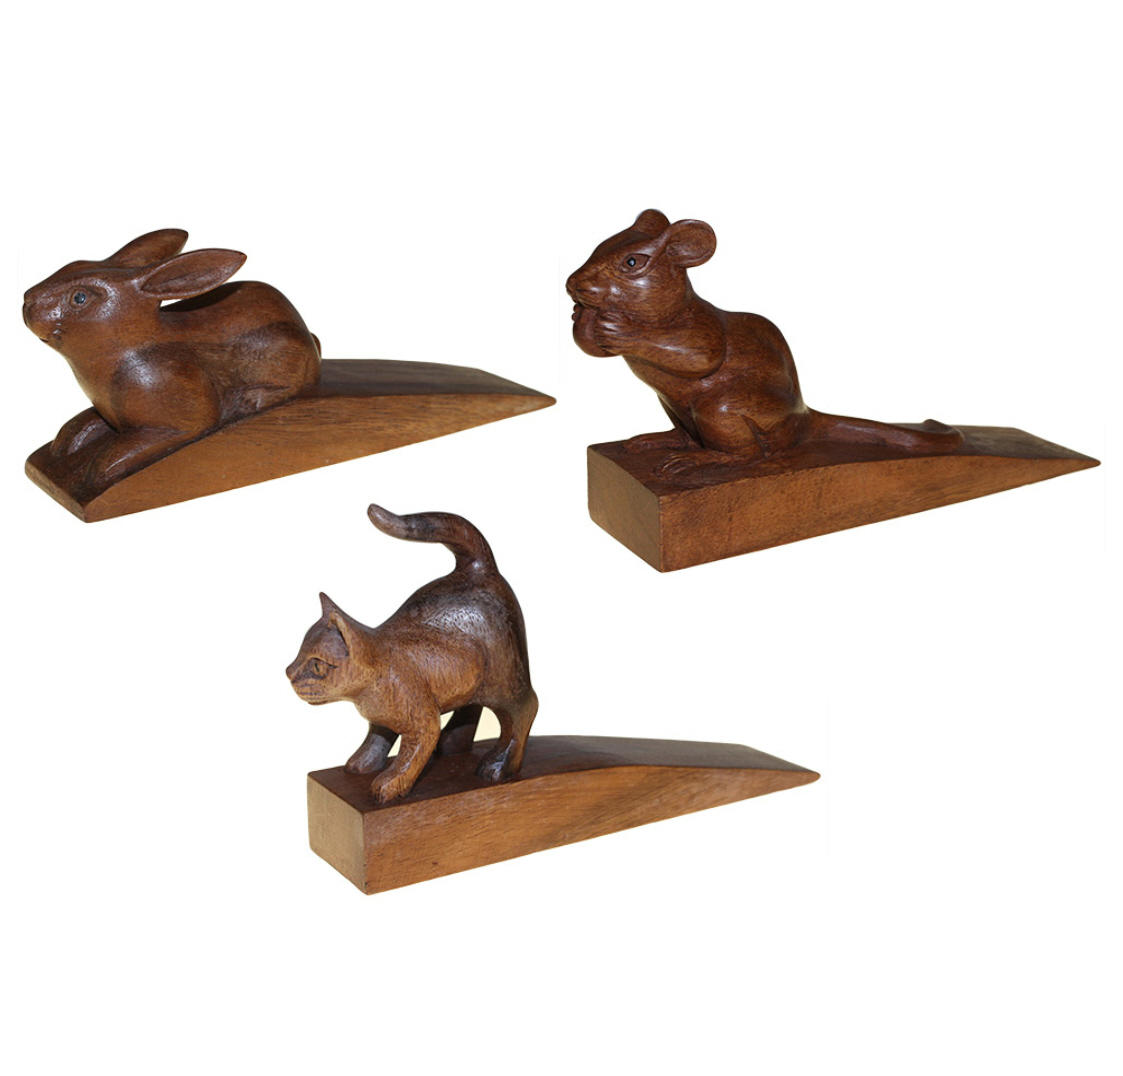 Hand Carved Wooden Animal Door Stops